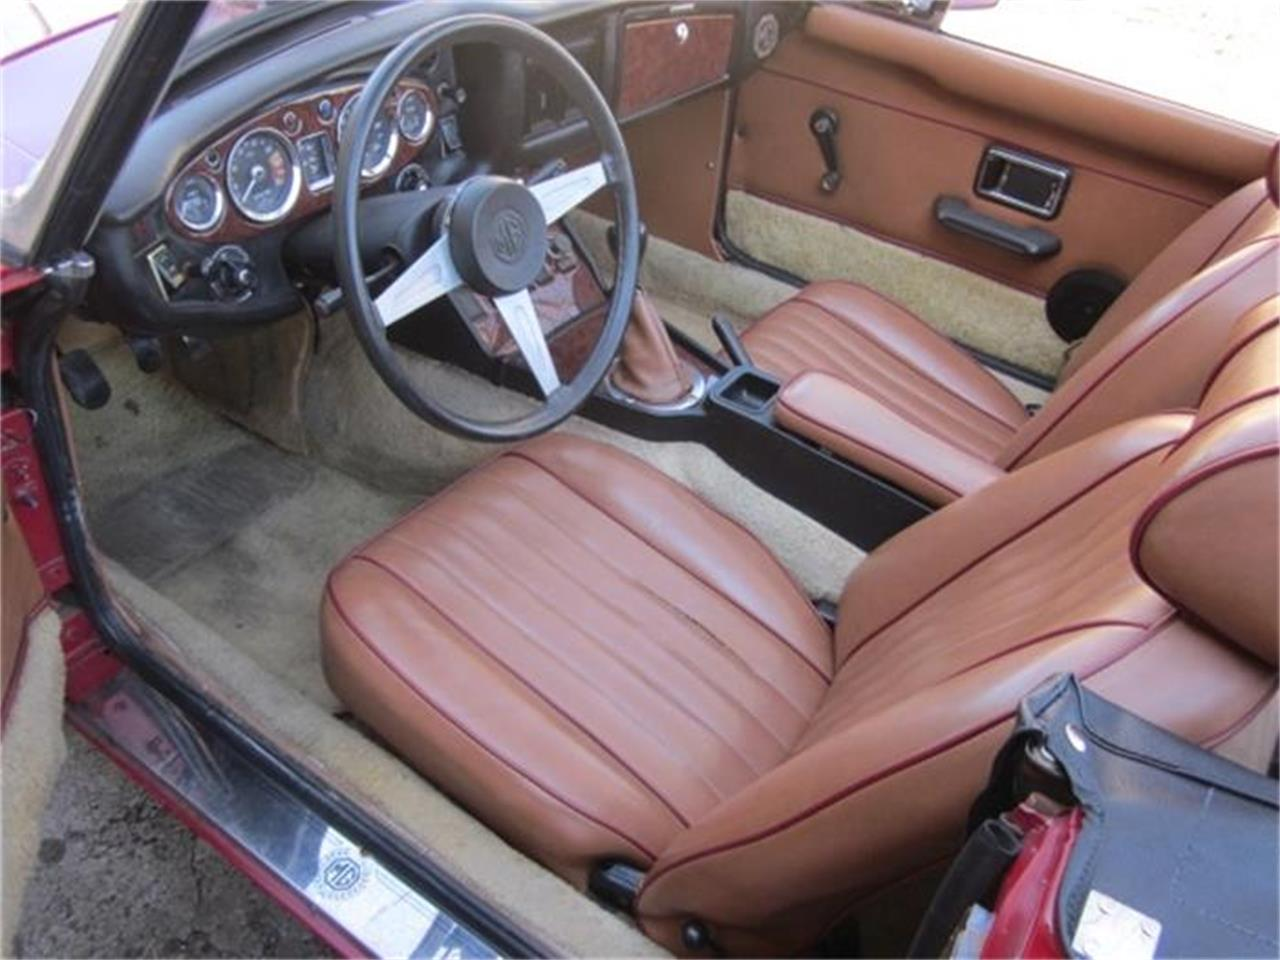 Large Picture of '76 MG MGB located in Stratford Connecticut - $16,900.00 - HHIB